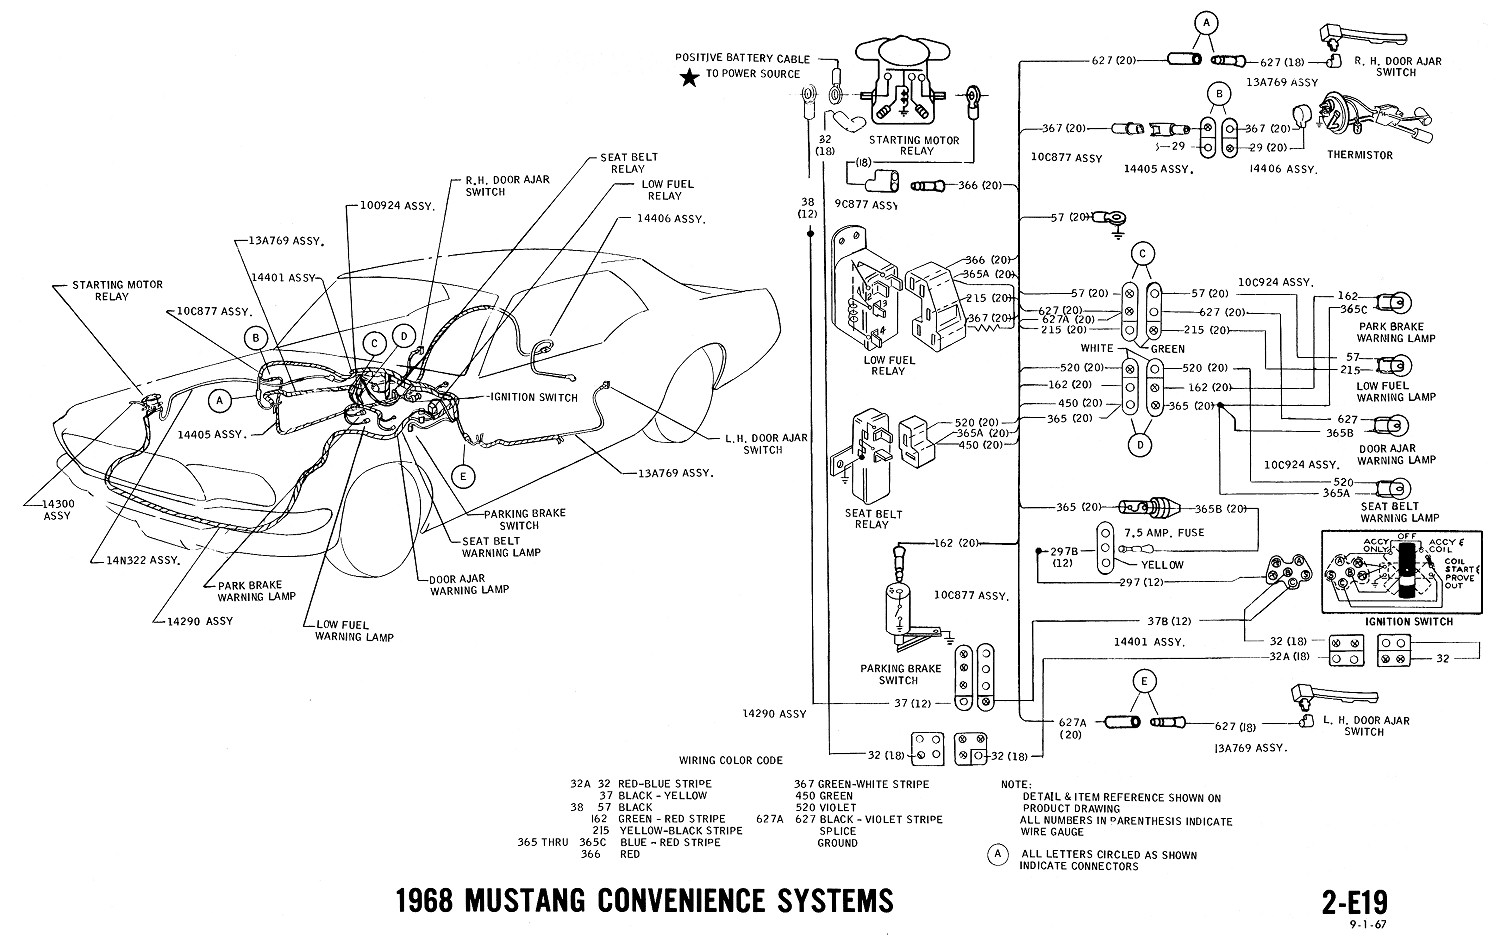 E19 1968 mustang wiring diagrams evolving software 1967 mustang turn signal wiring diagram at cos-gaming.co